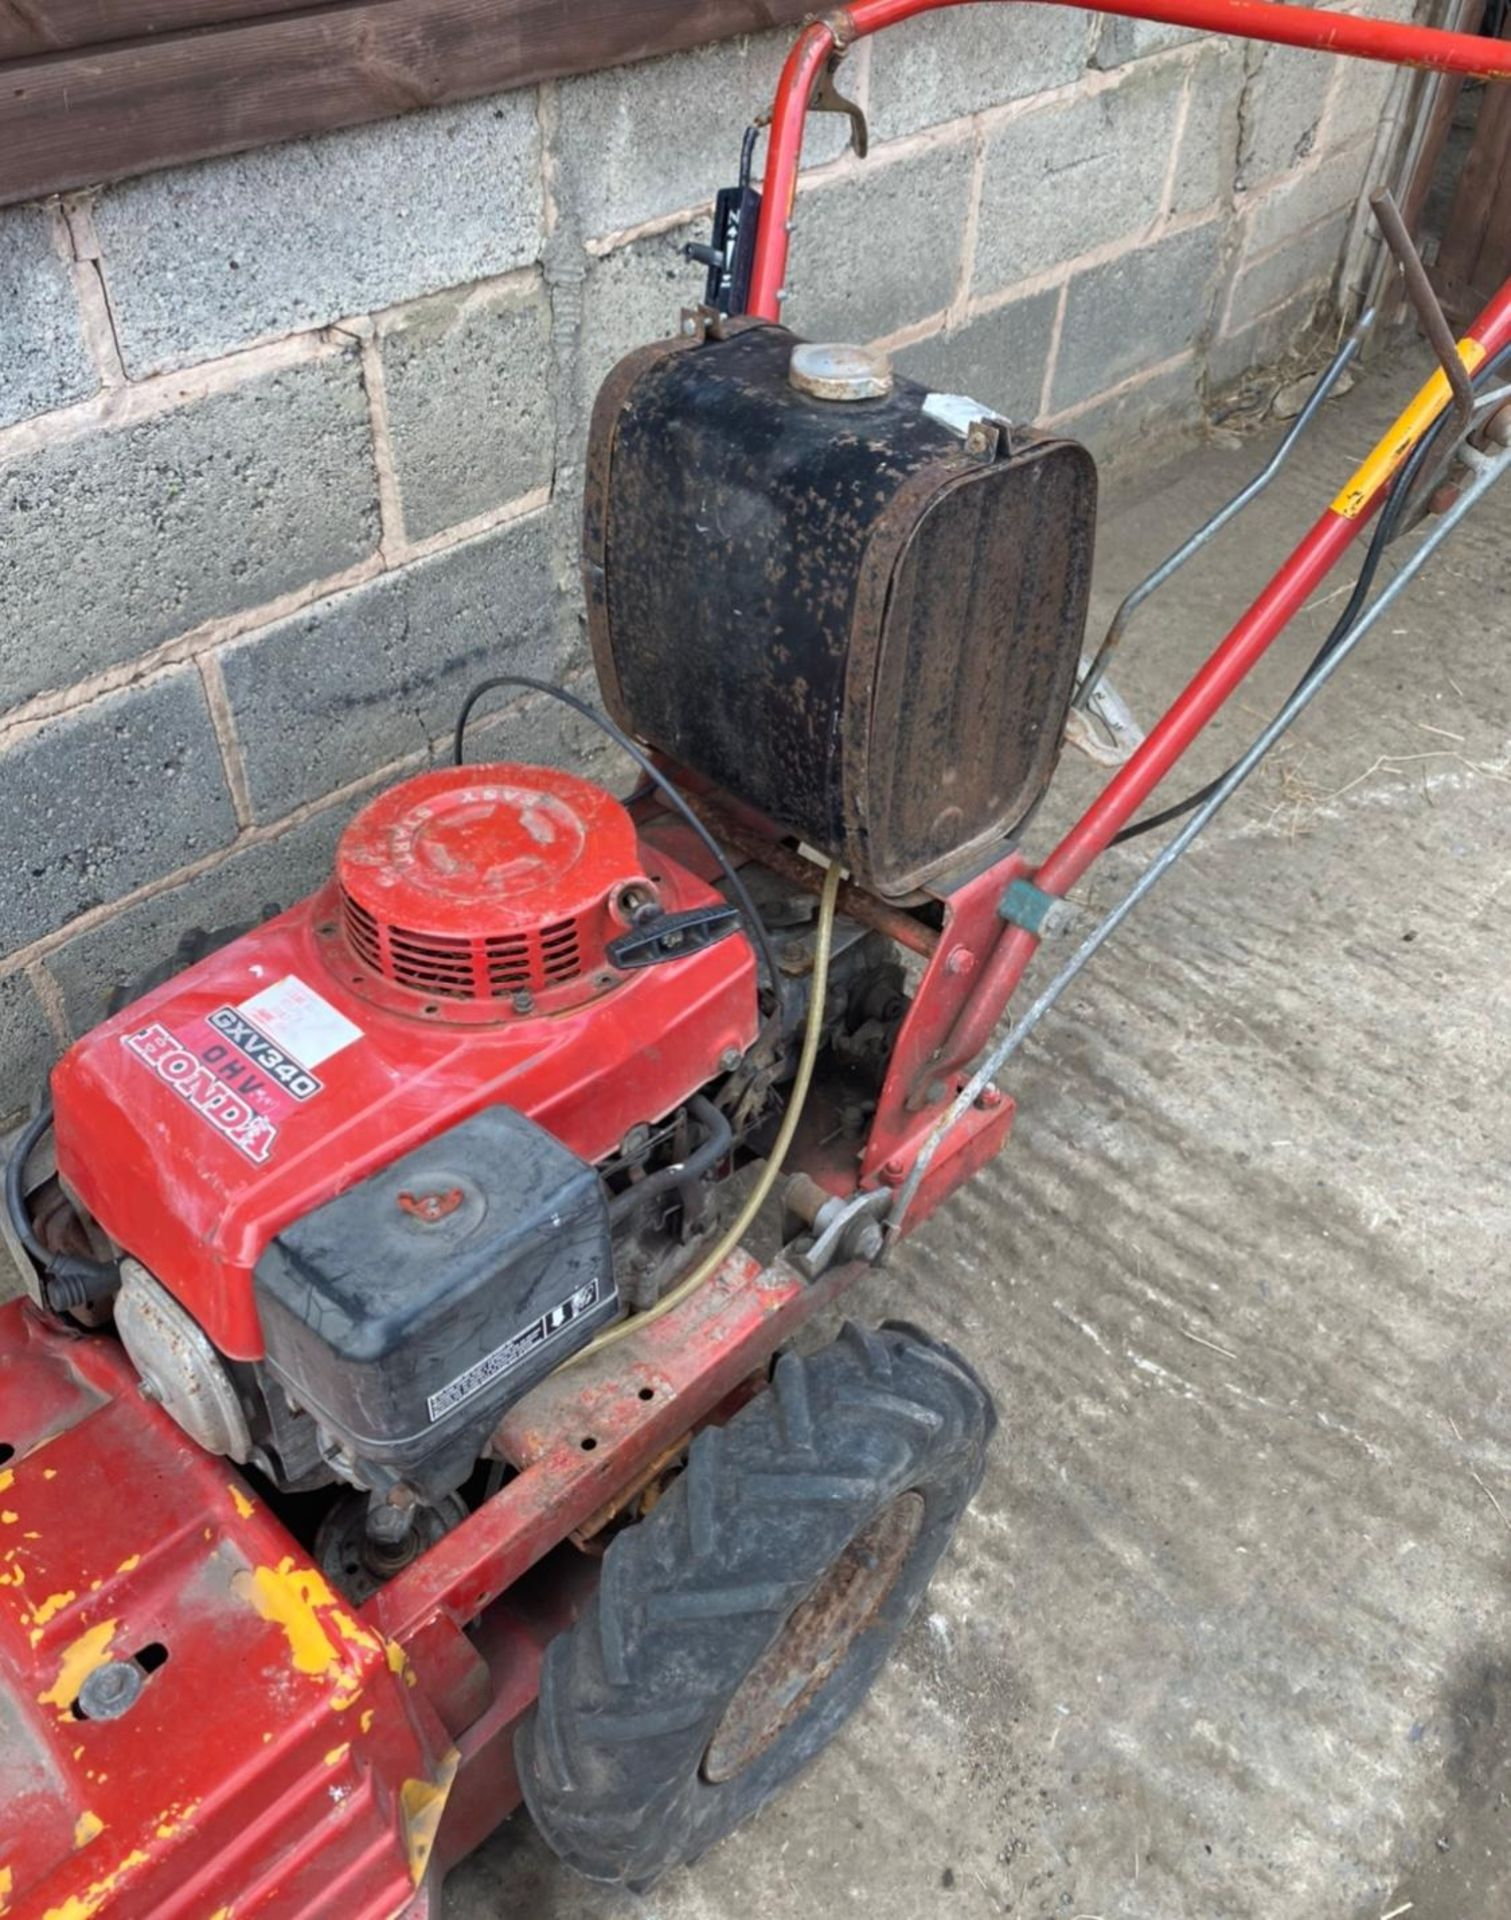 HONDA GV340 WALK BEHIND MOWER, SELF PROPELLED *PLUS VAT* - Image 3 of 3